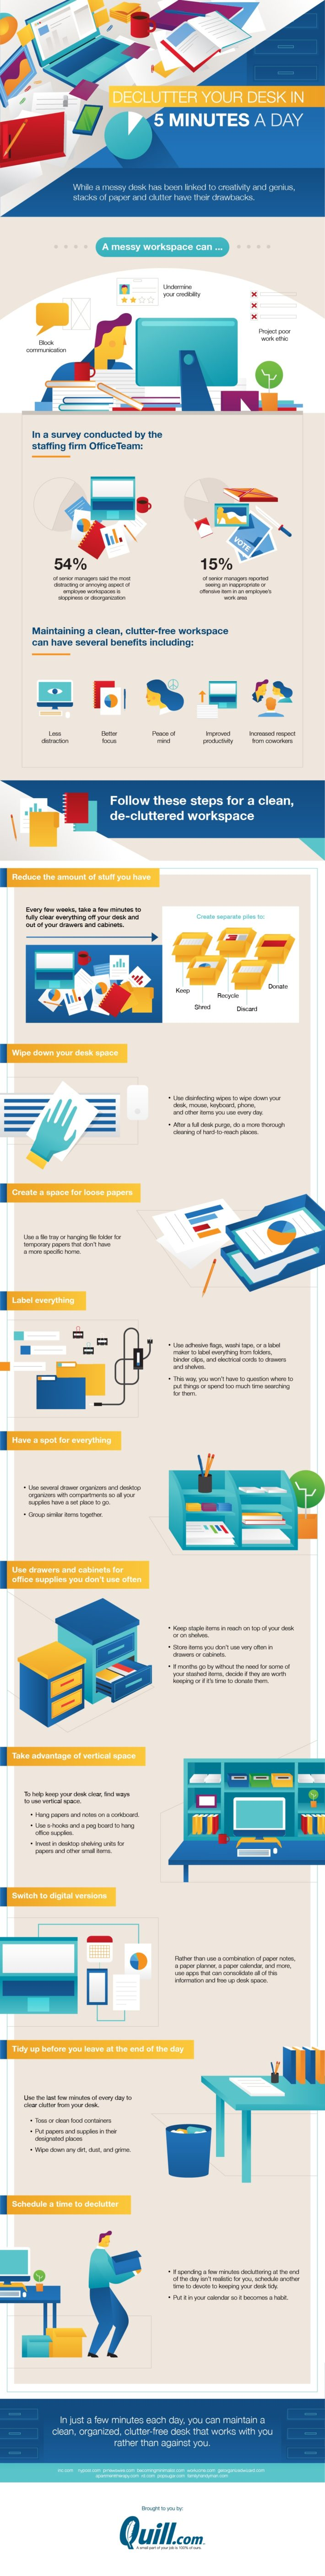 info graphic with tips to organize office